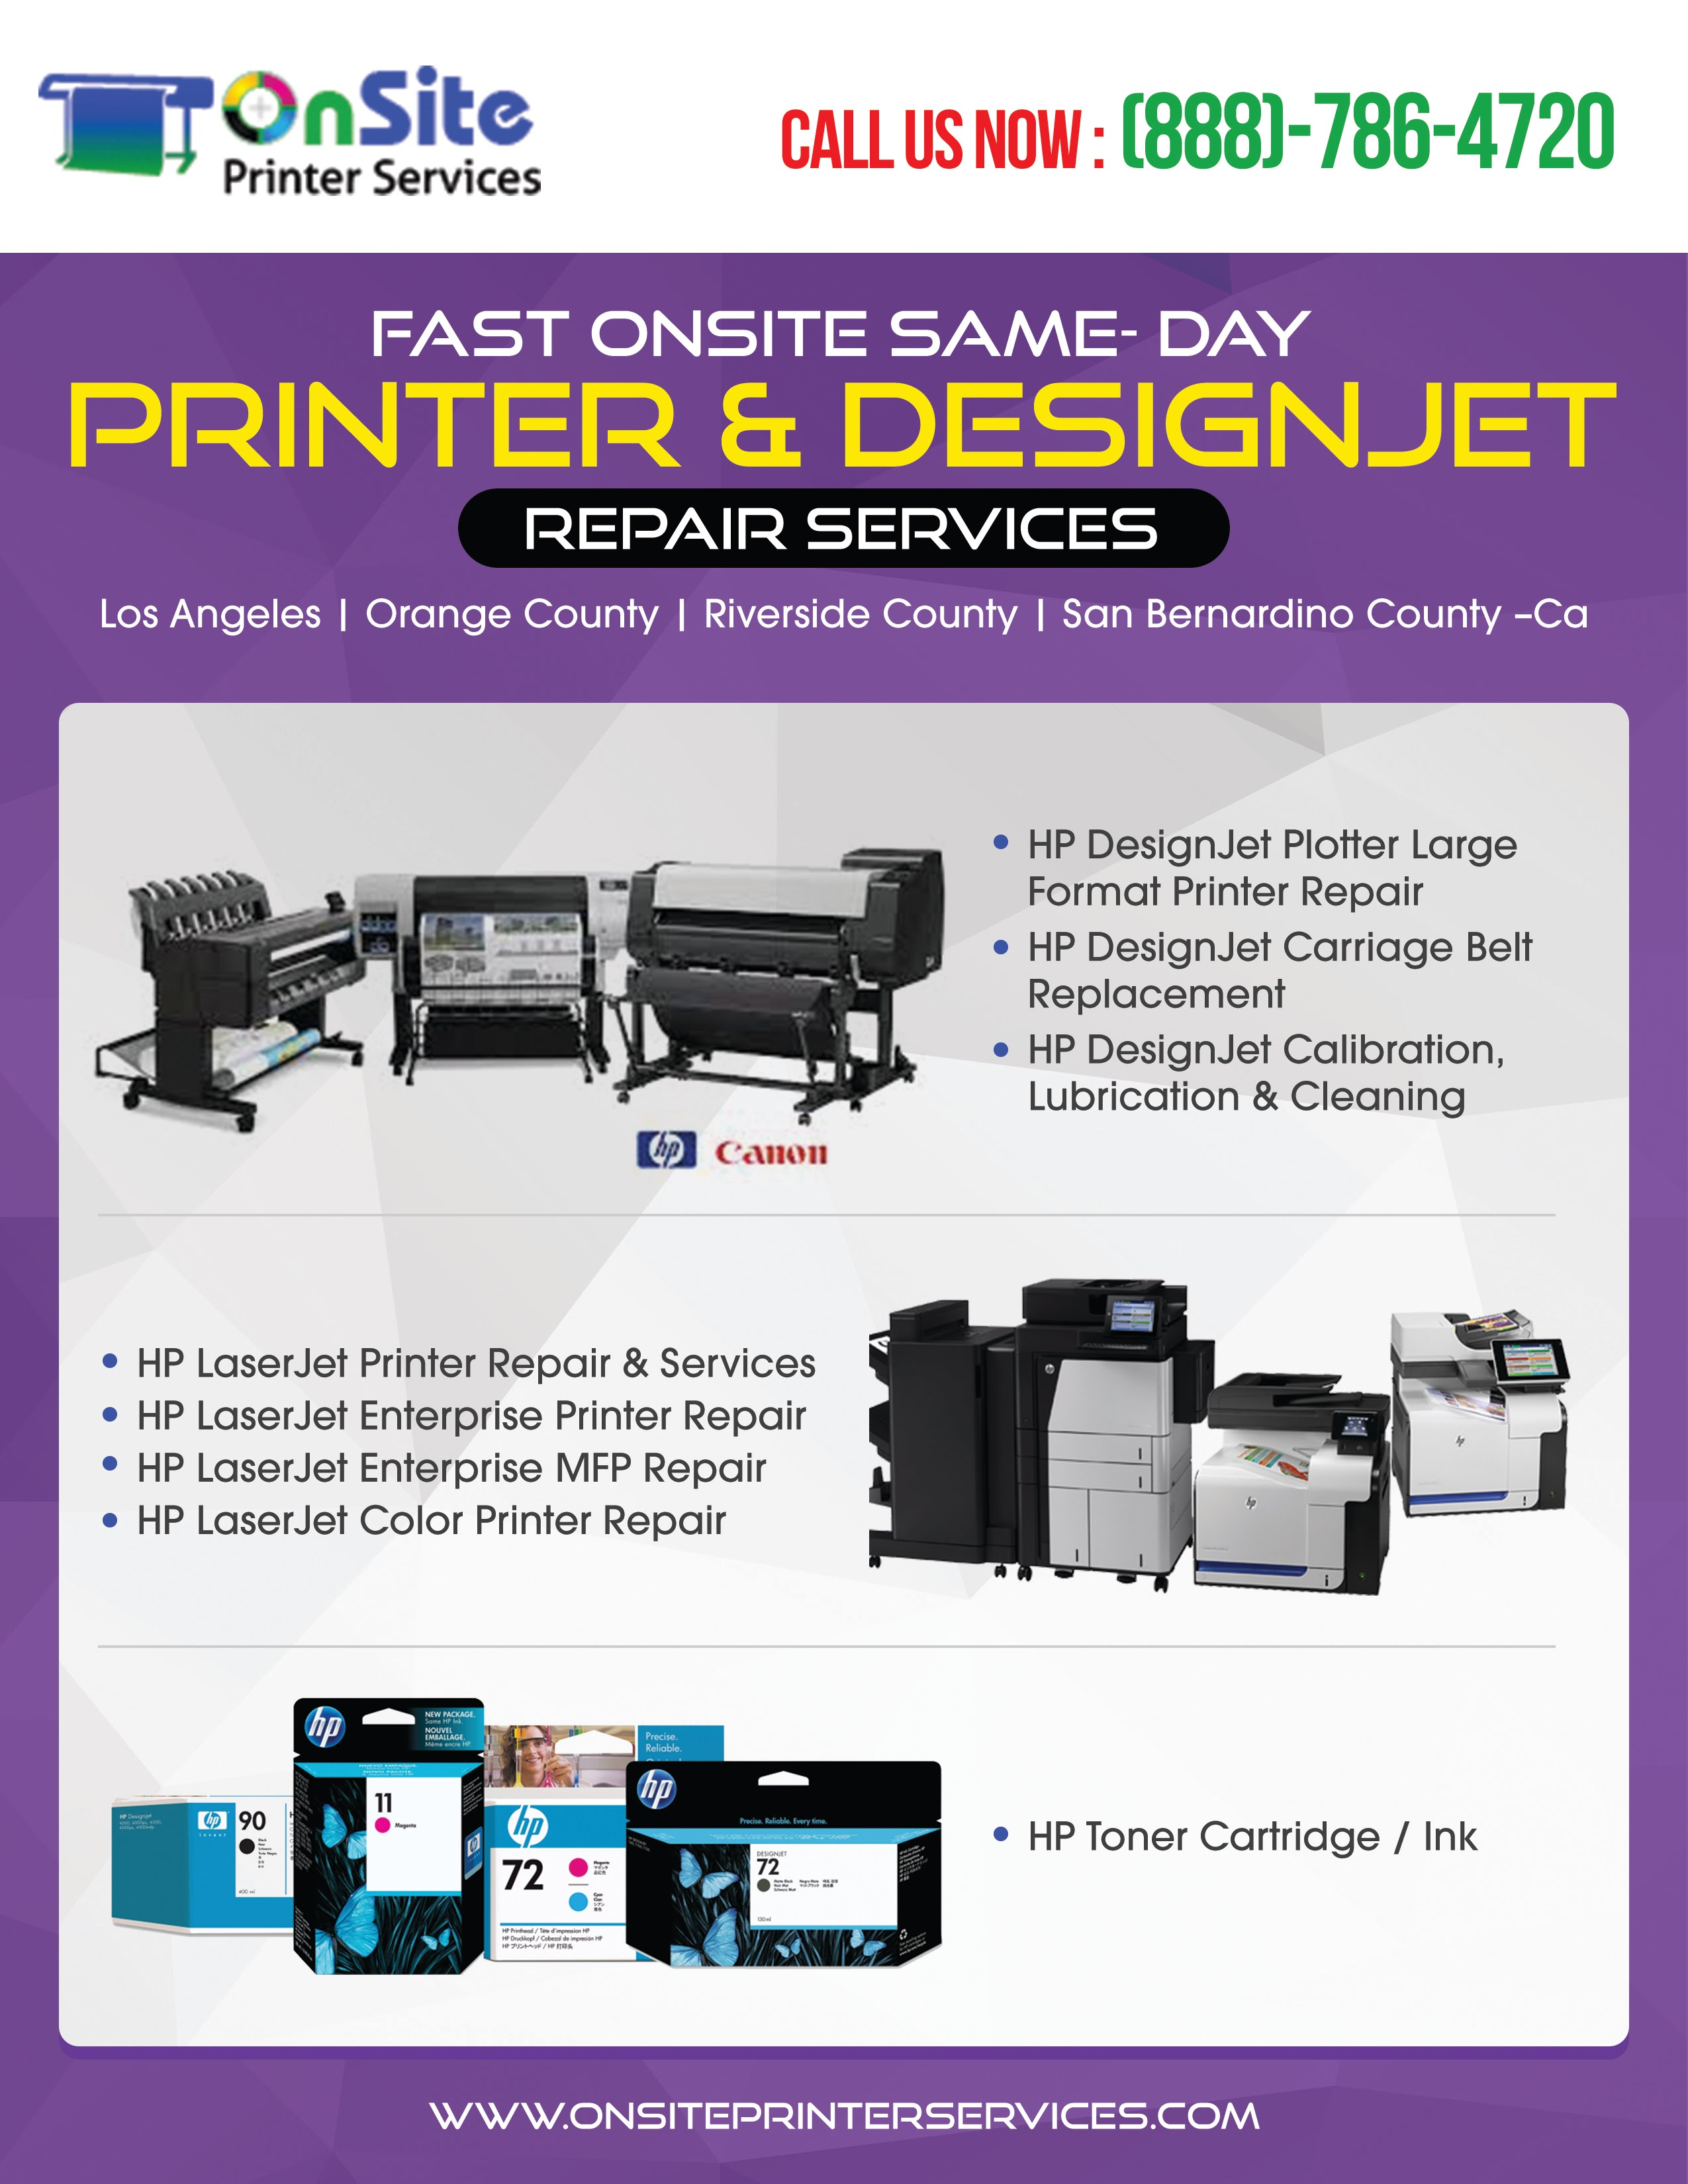 Hp Designjet Repair San Bernardino County Ca Plotter T520 24 Inch 888 786 4720 Southern Californias Fast Onsite Printer Services Los Angeles Orange